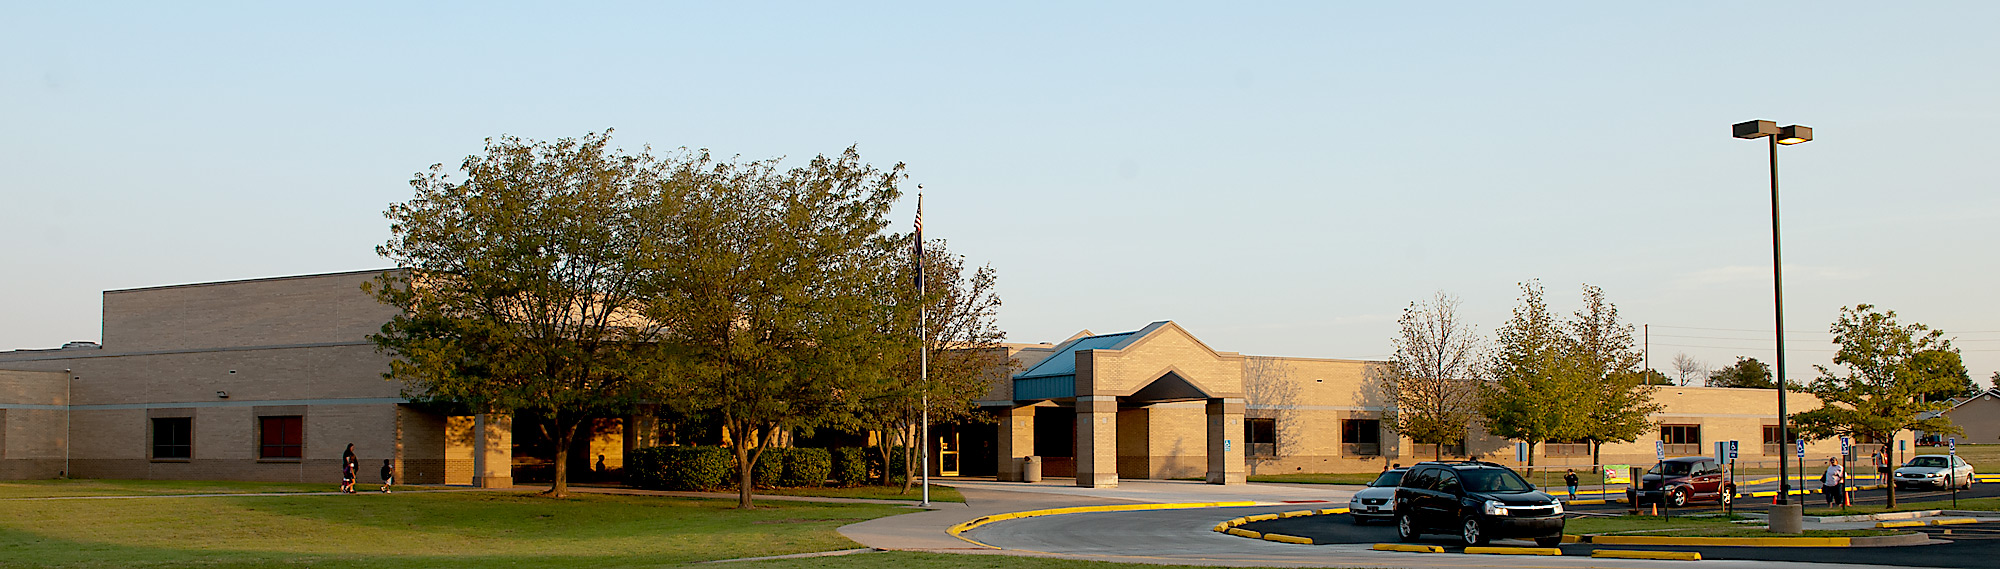 eisenhower-elementary-school-independence-kansas